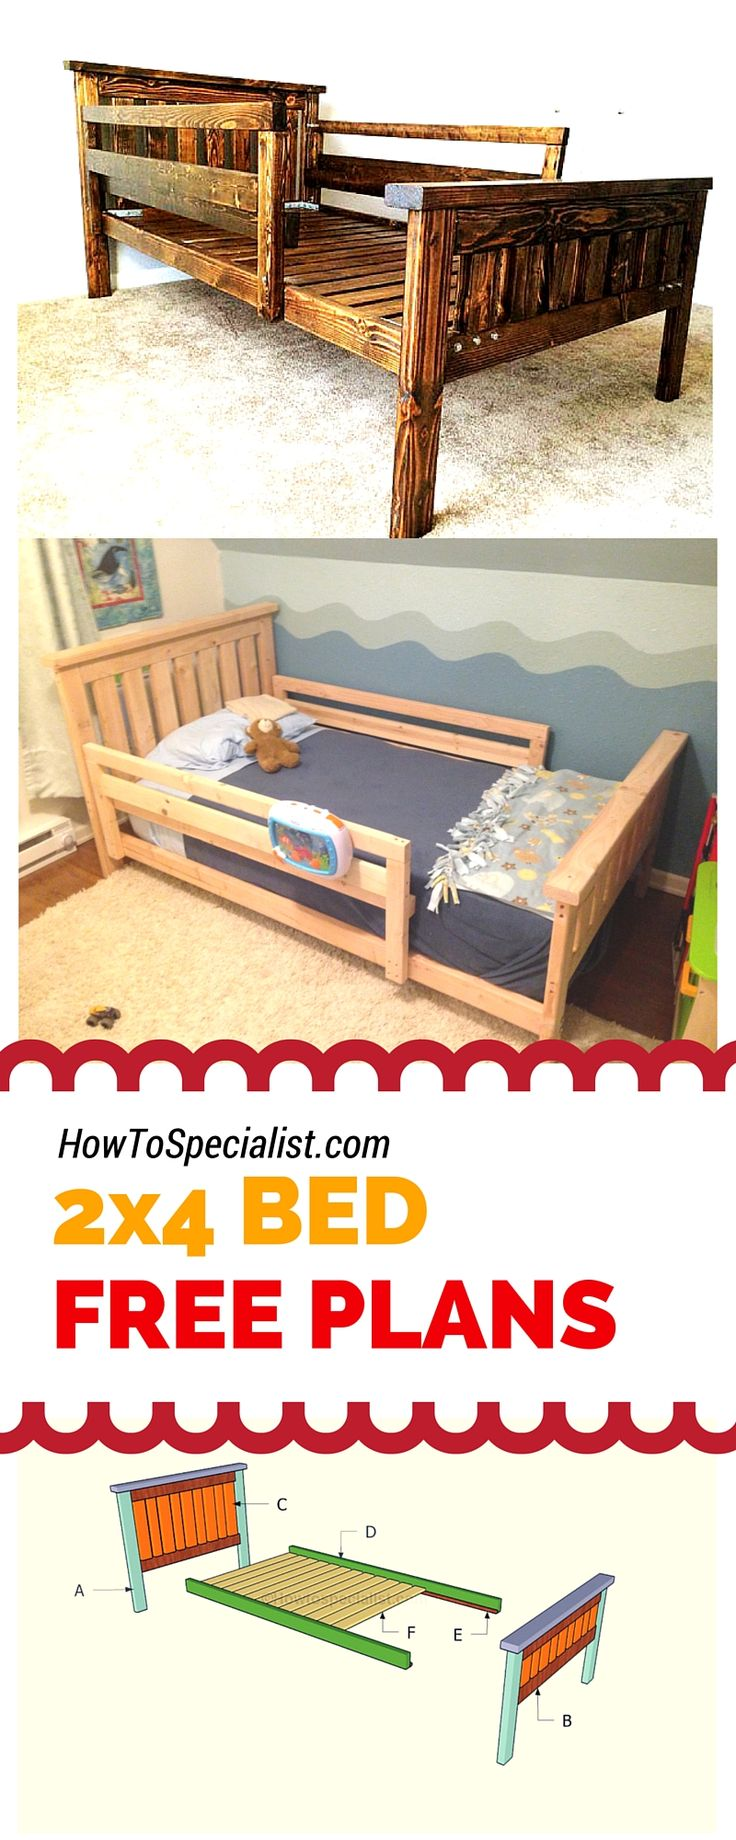 how to build a 2x4 bed frame easy to follow free plans guides and